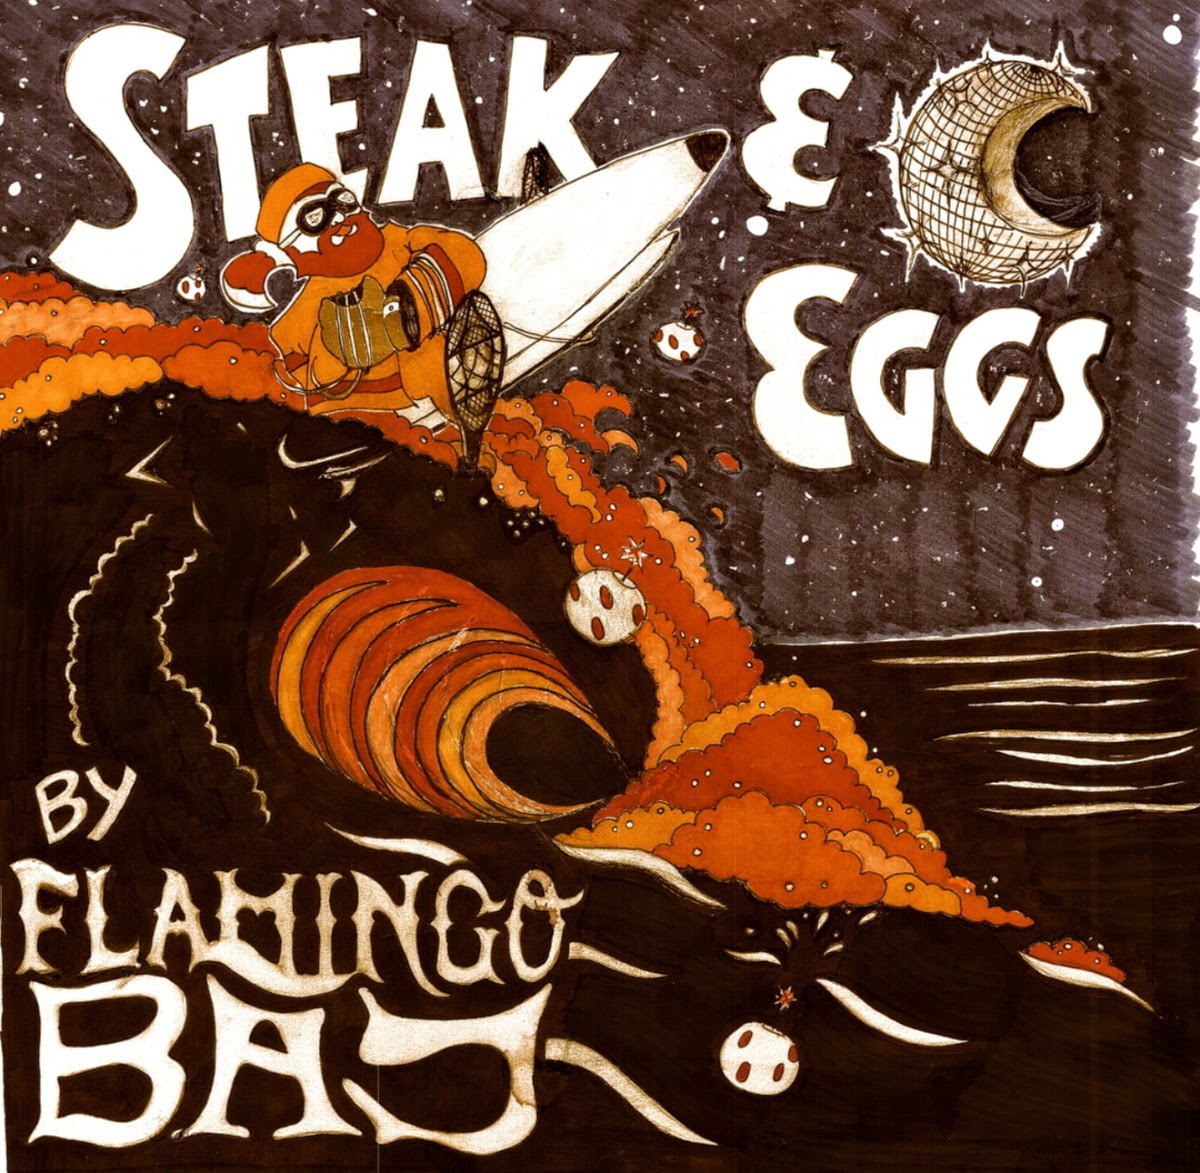 http://www.d4am.net/2015/04/flamingo-bay-steak-n-eggs.html